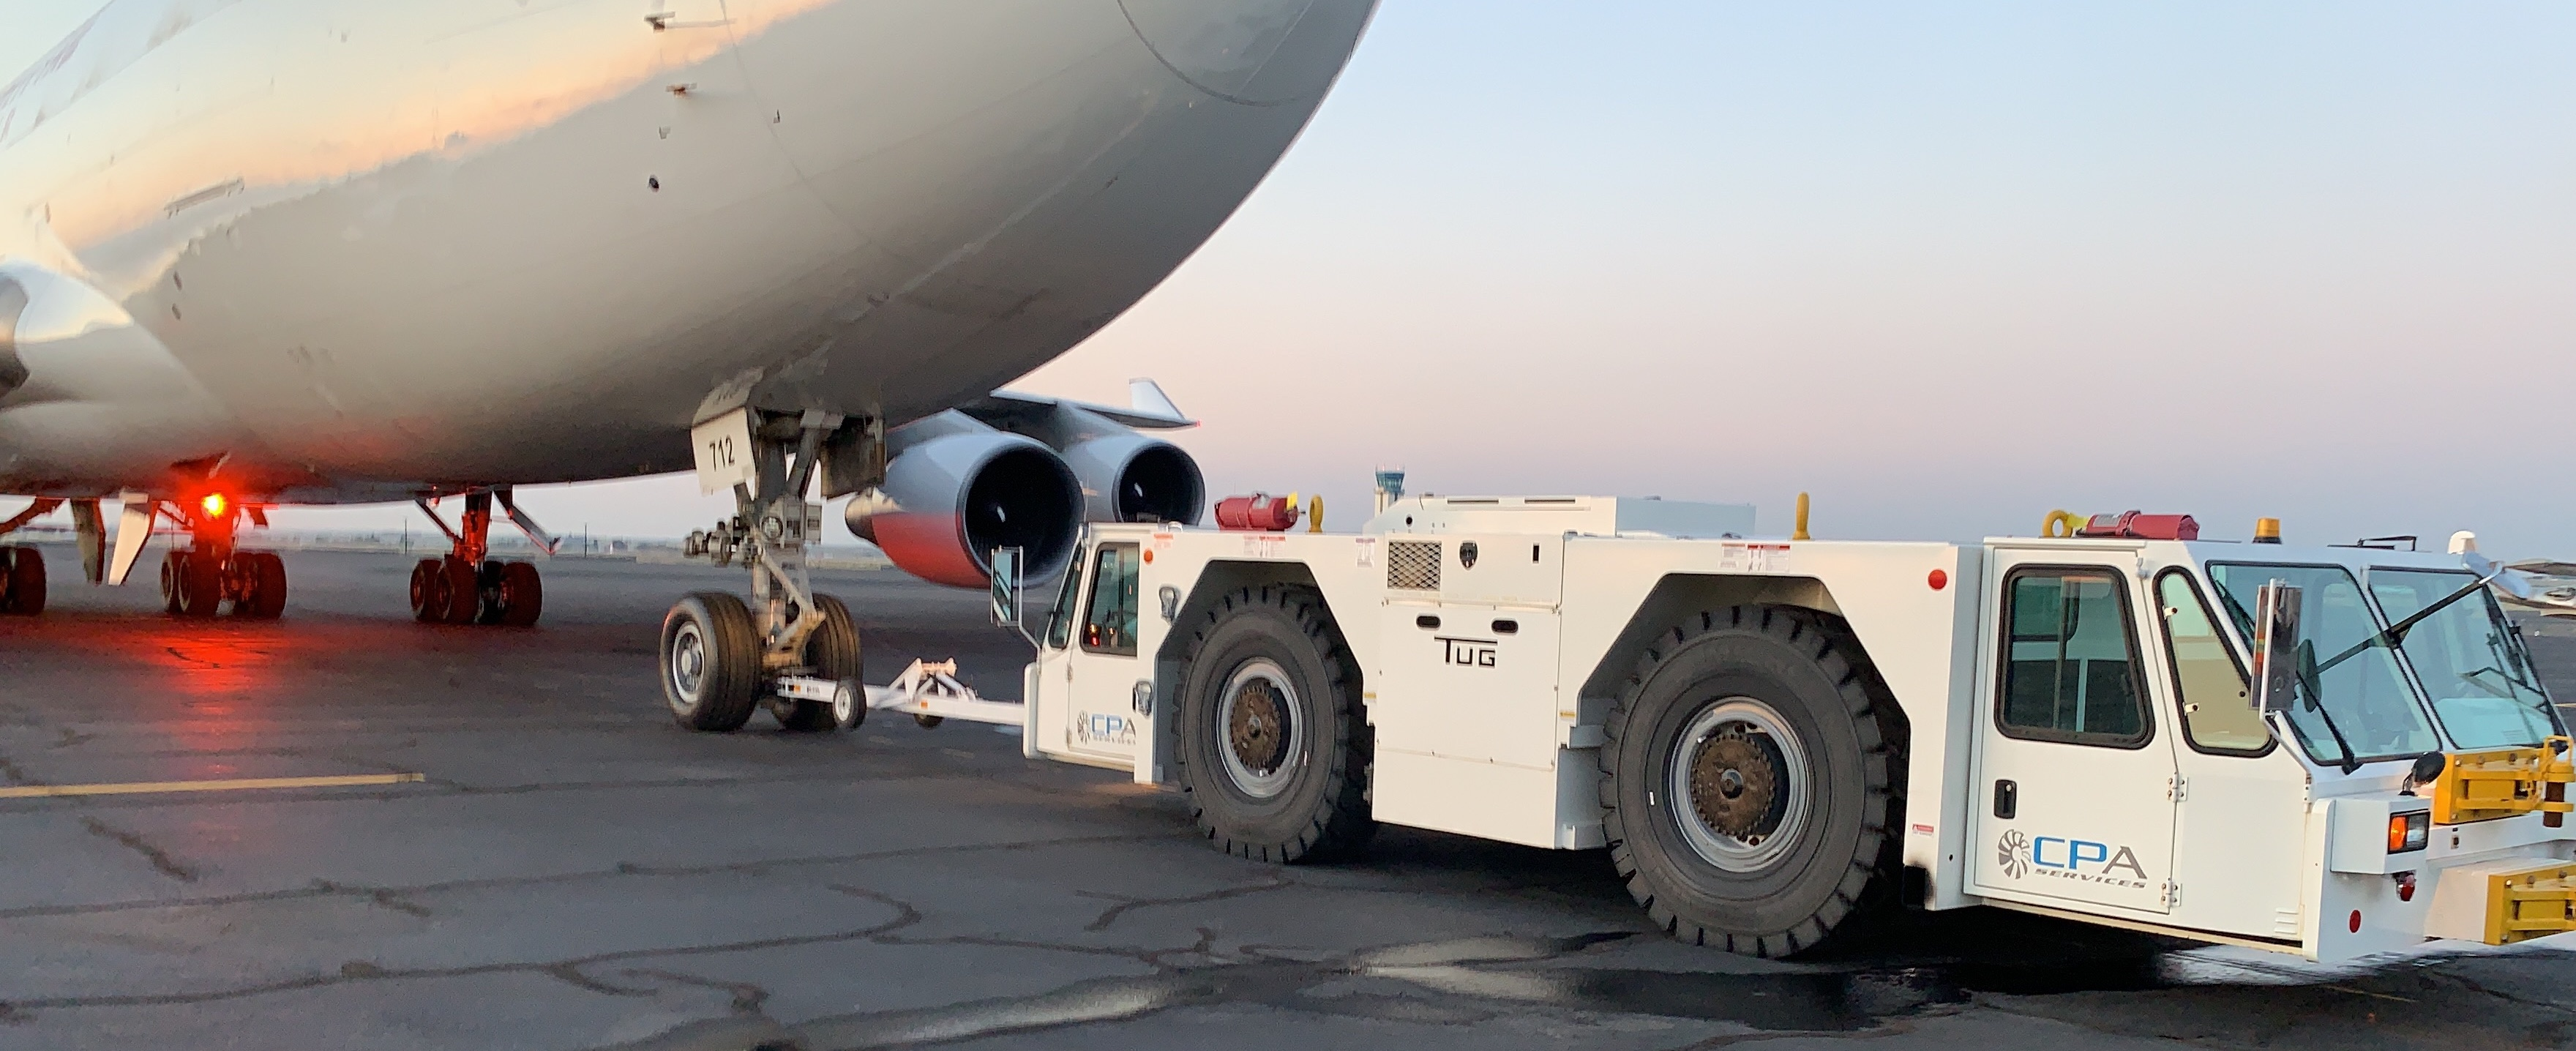 TUG/Textron GT110 pushback tug pushing back a loaded B747.